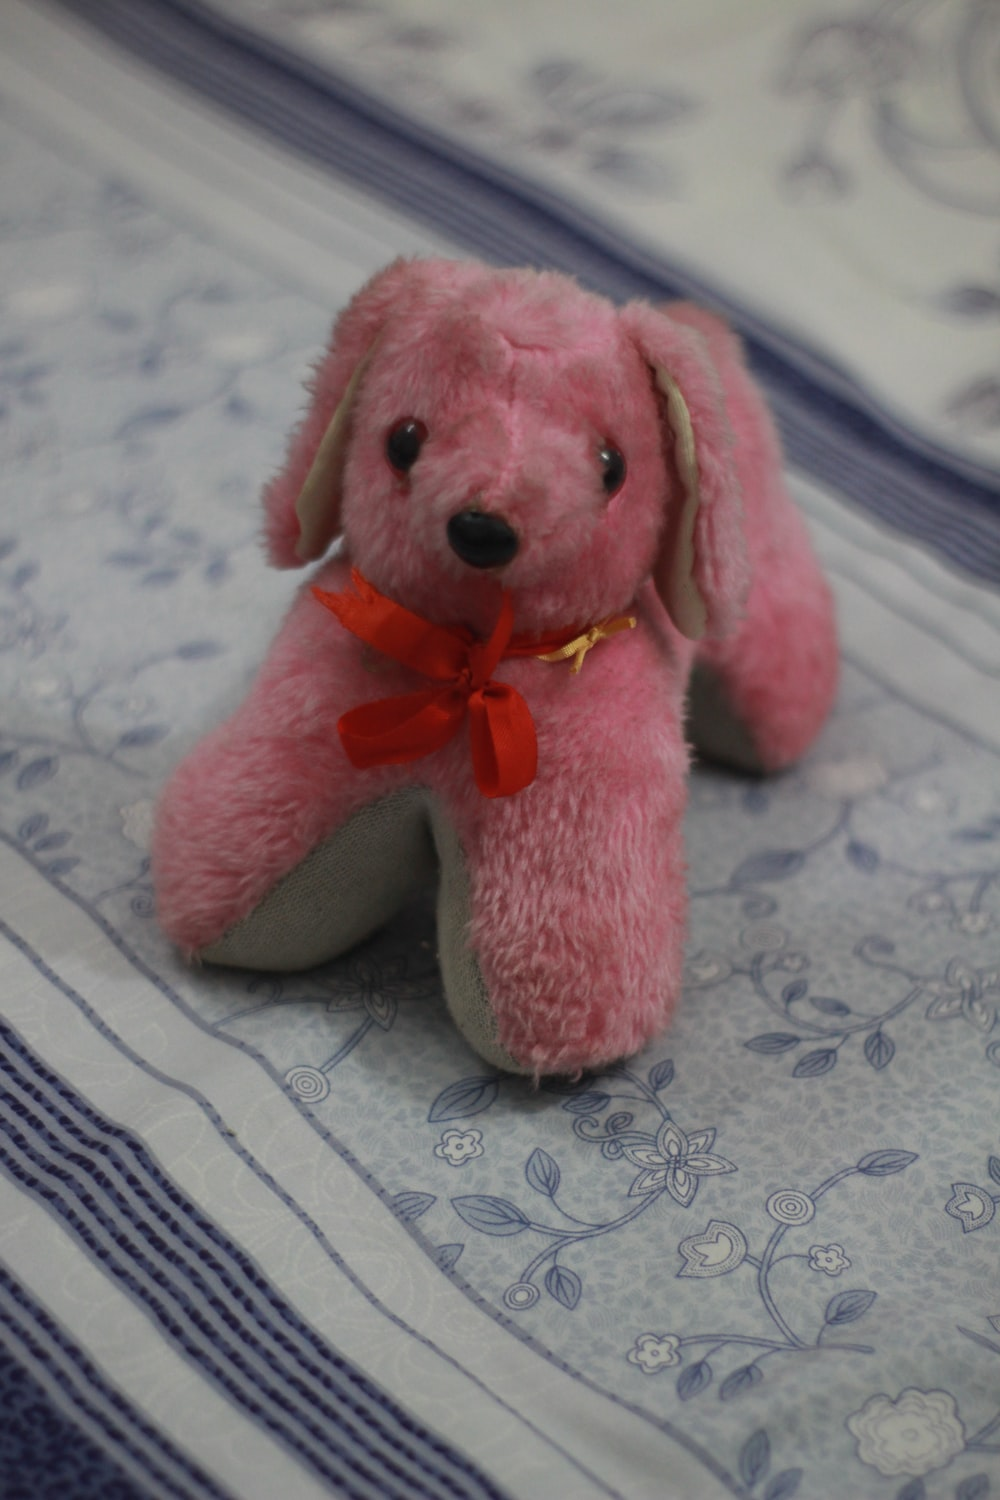 pink bear plush toy on white and blue textile